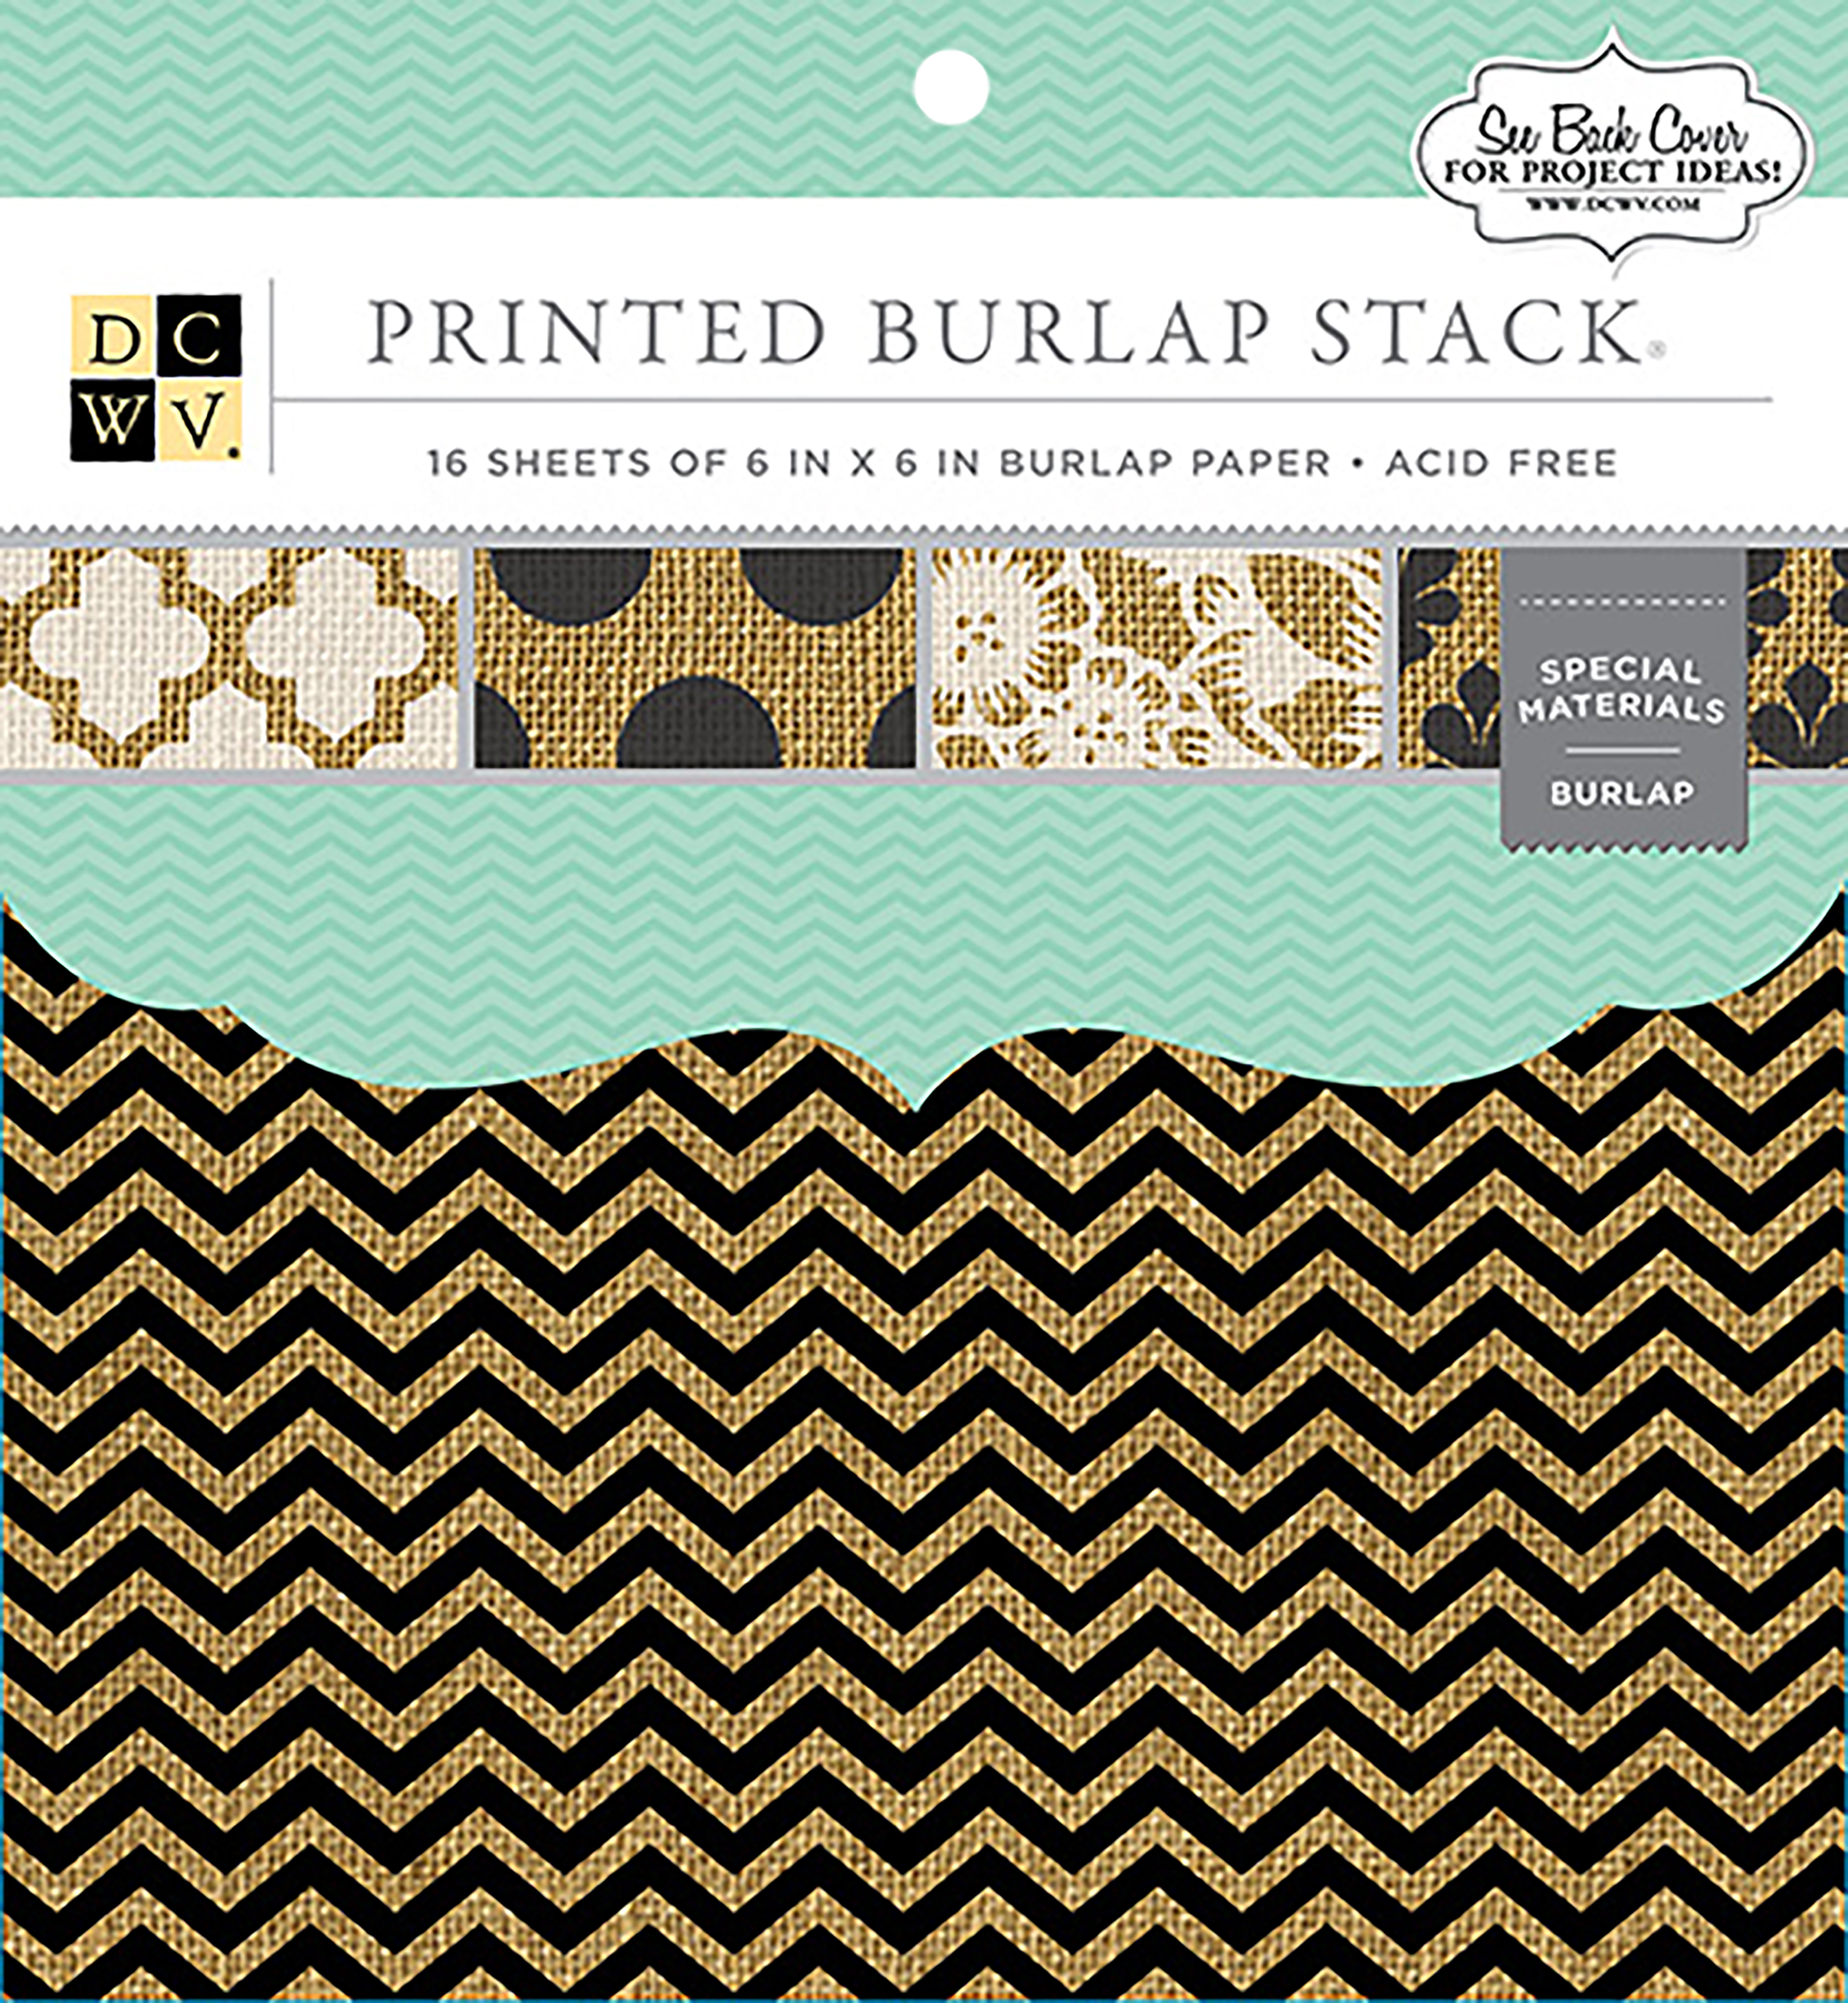 DCWV Single-Sided Specialty Stack 6X6 16/Pkg-Printed Burlap, 8 Designs/2 Each